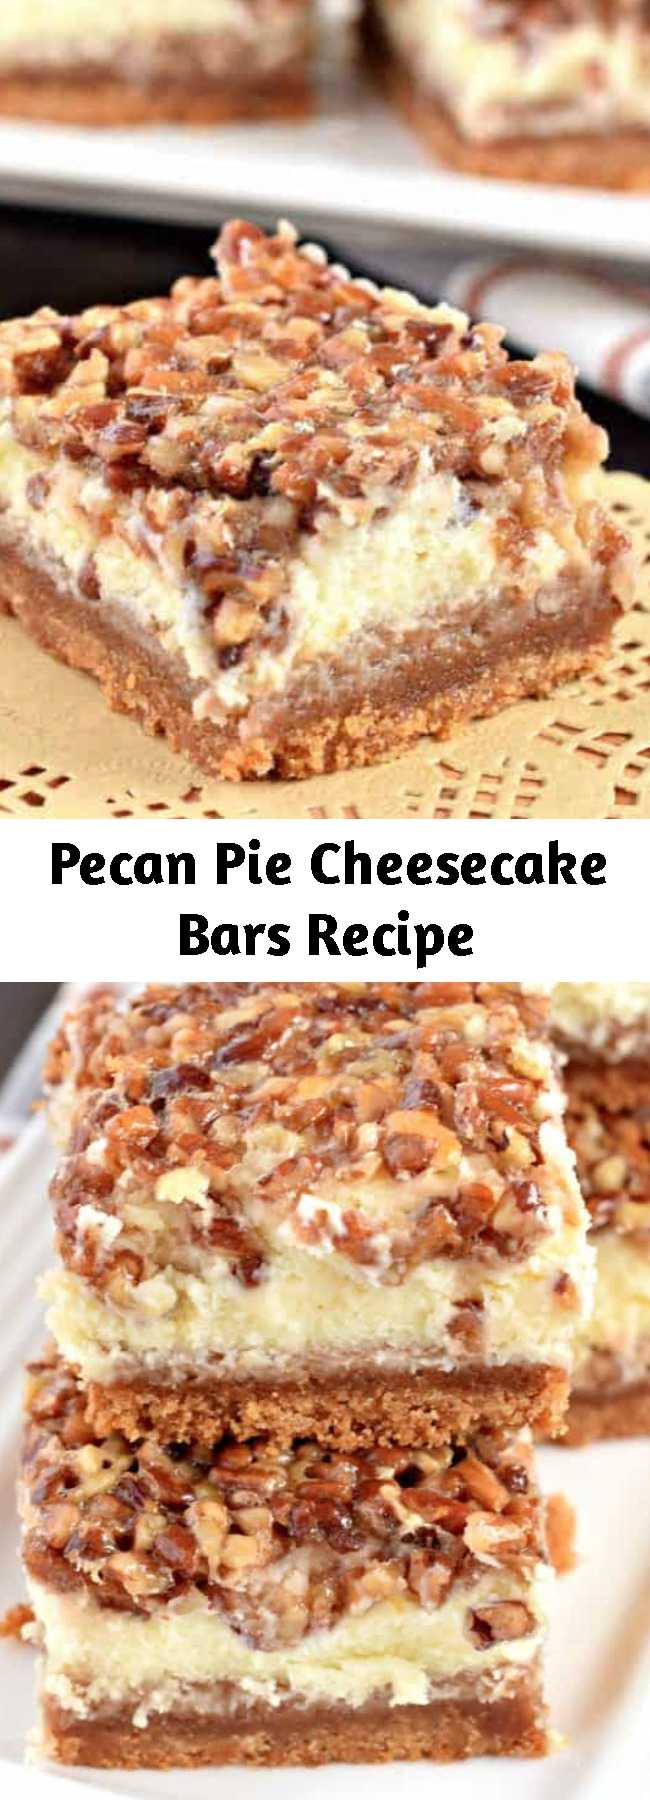 Pecan Pie Cheesecake Bars Recipe - The layers on these Pecan Pie Cheesecake Bars are incredible! One tasty bite and you'll fall in love! From the graham cracker crust, to the sweet cheesecake filling and the pecan pie topping, this holiday dessert receives rave reviews from everyone!